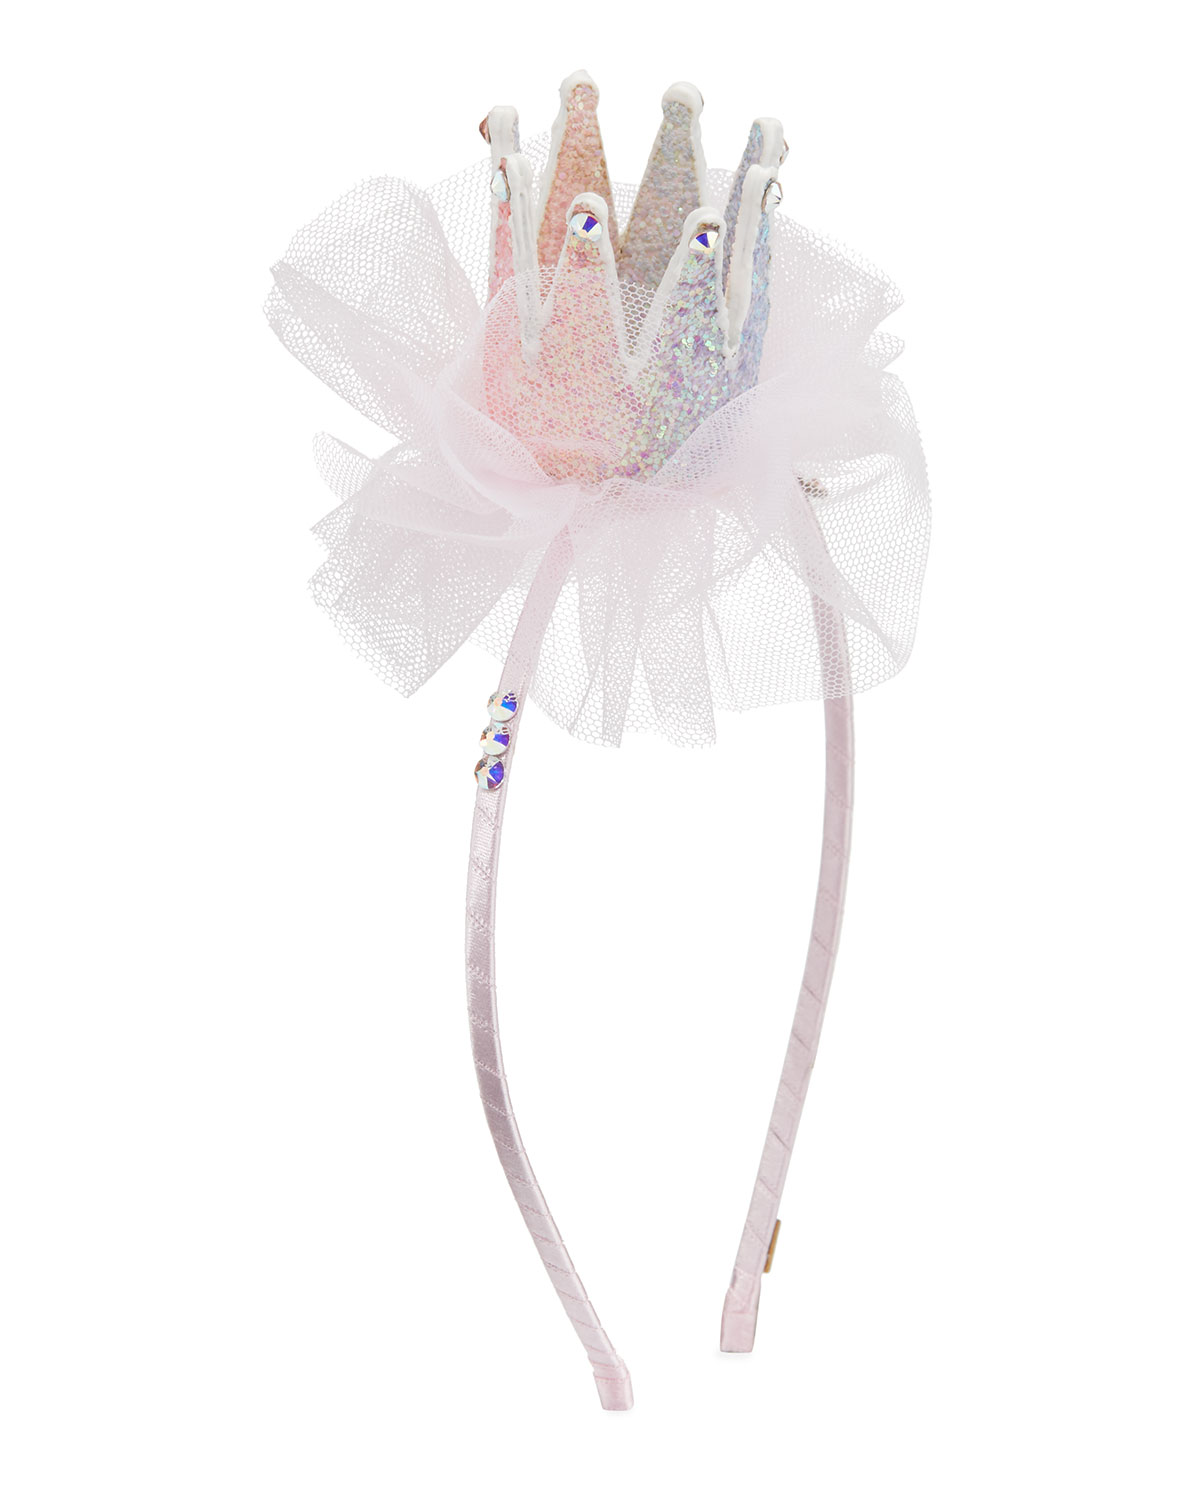 Bari Lynn Girl's 3D Glitter Crown Headband w/ Tulle & Crystal Trim